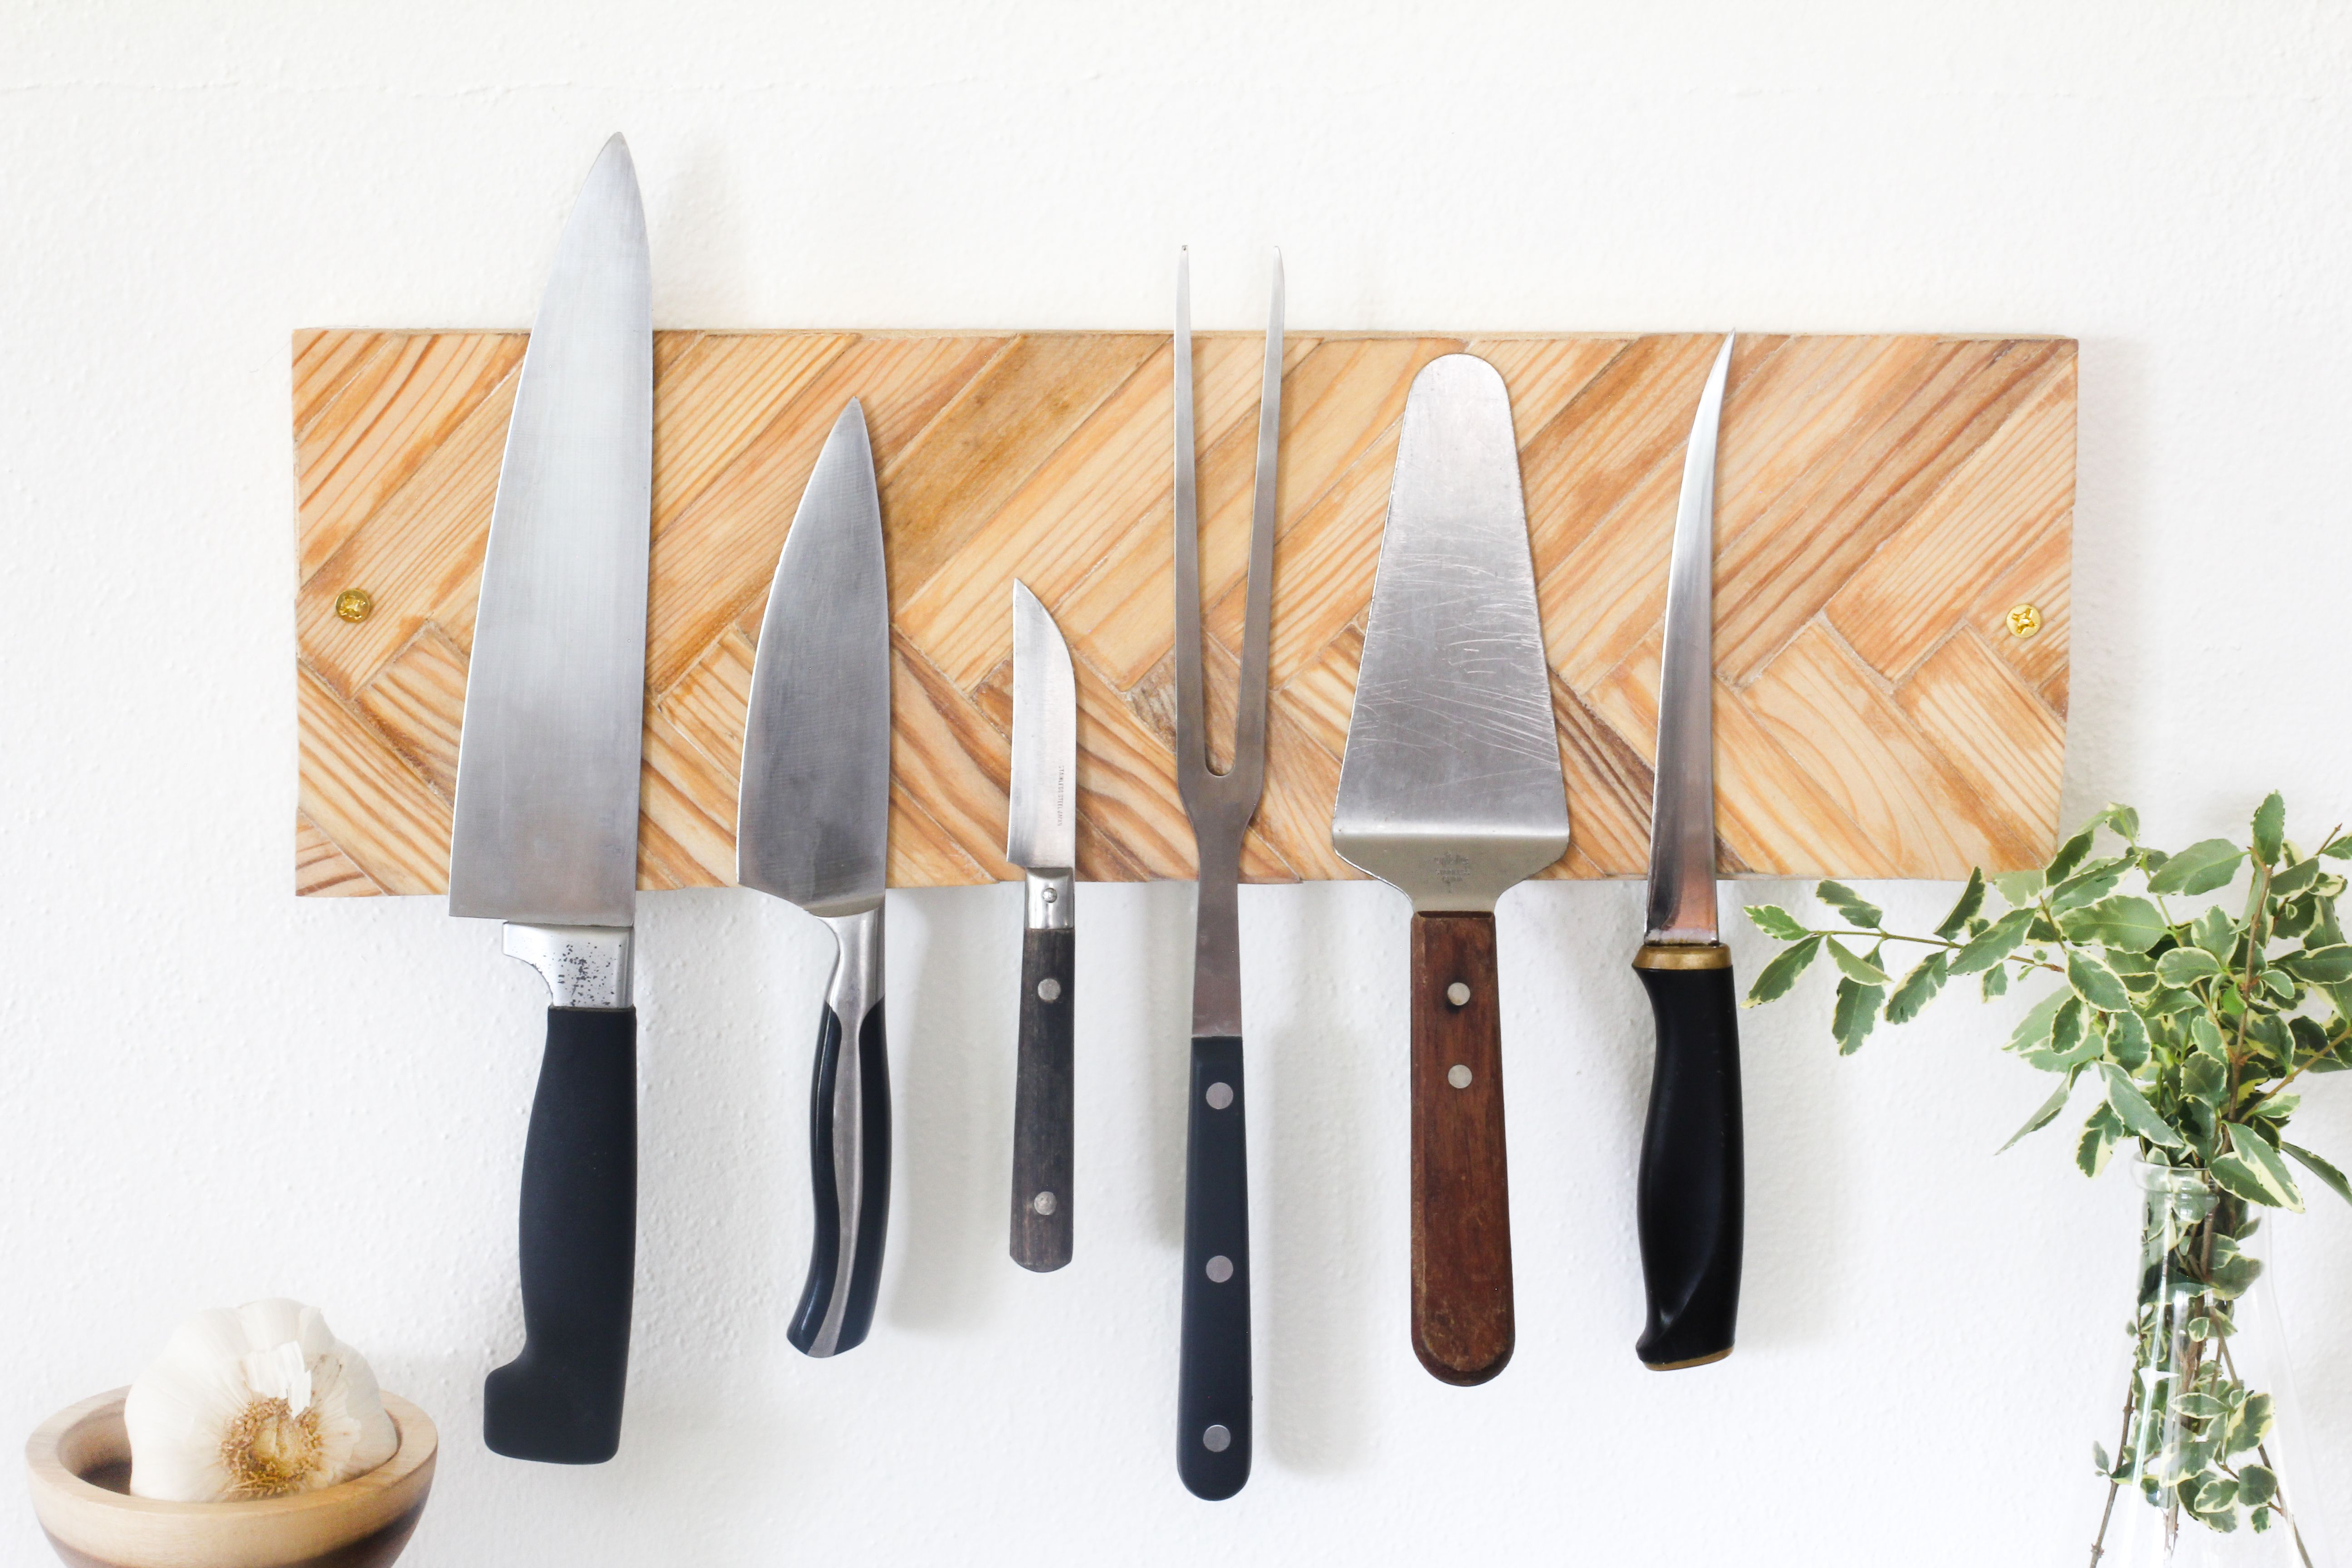 Wall Mounted Knife Rack Tutorial Using Paint Stirrers Paint